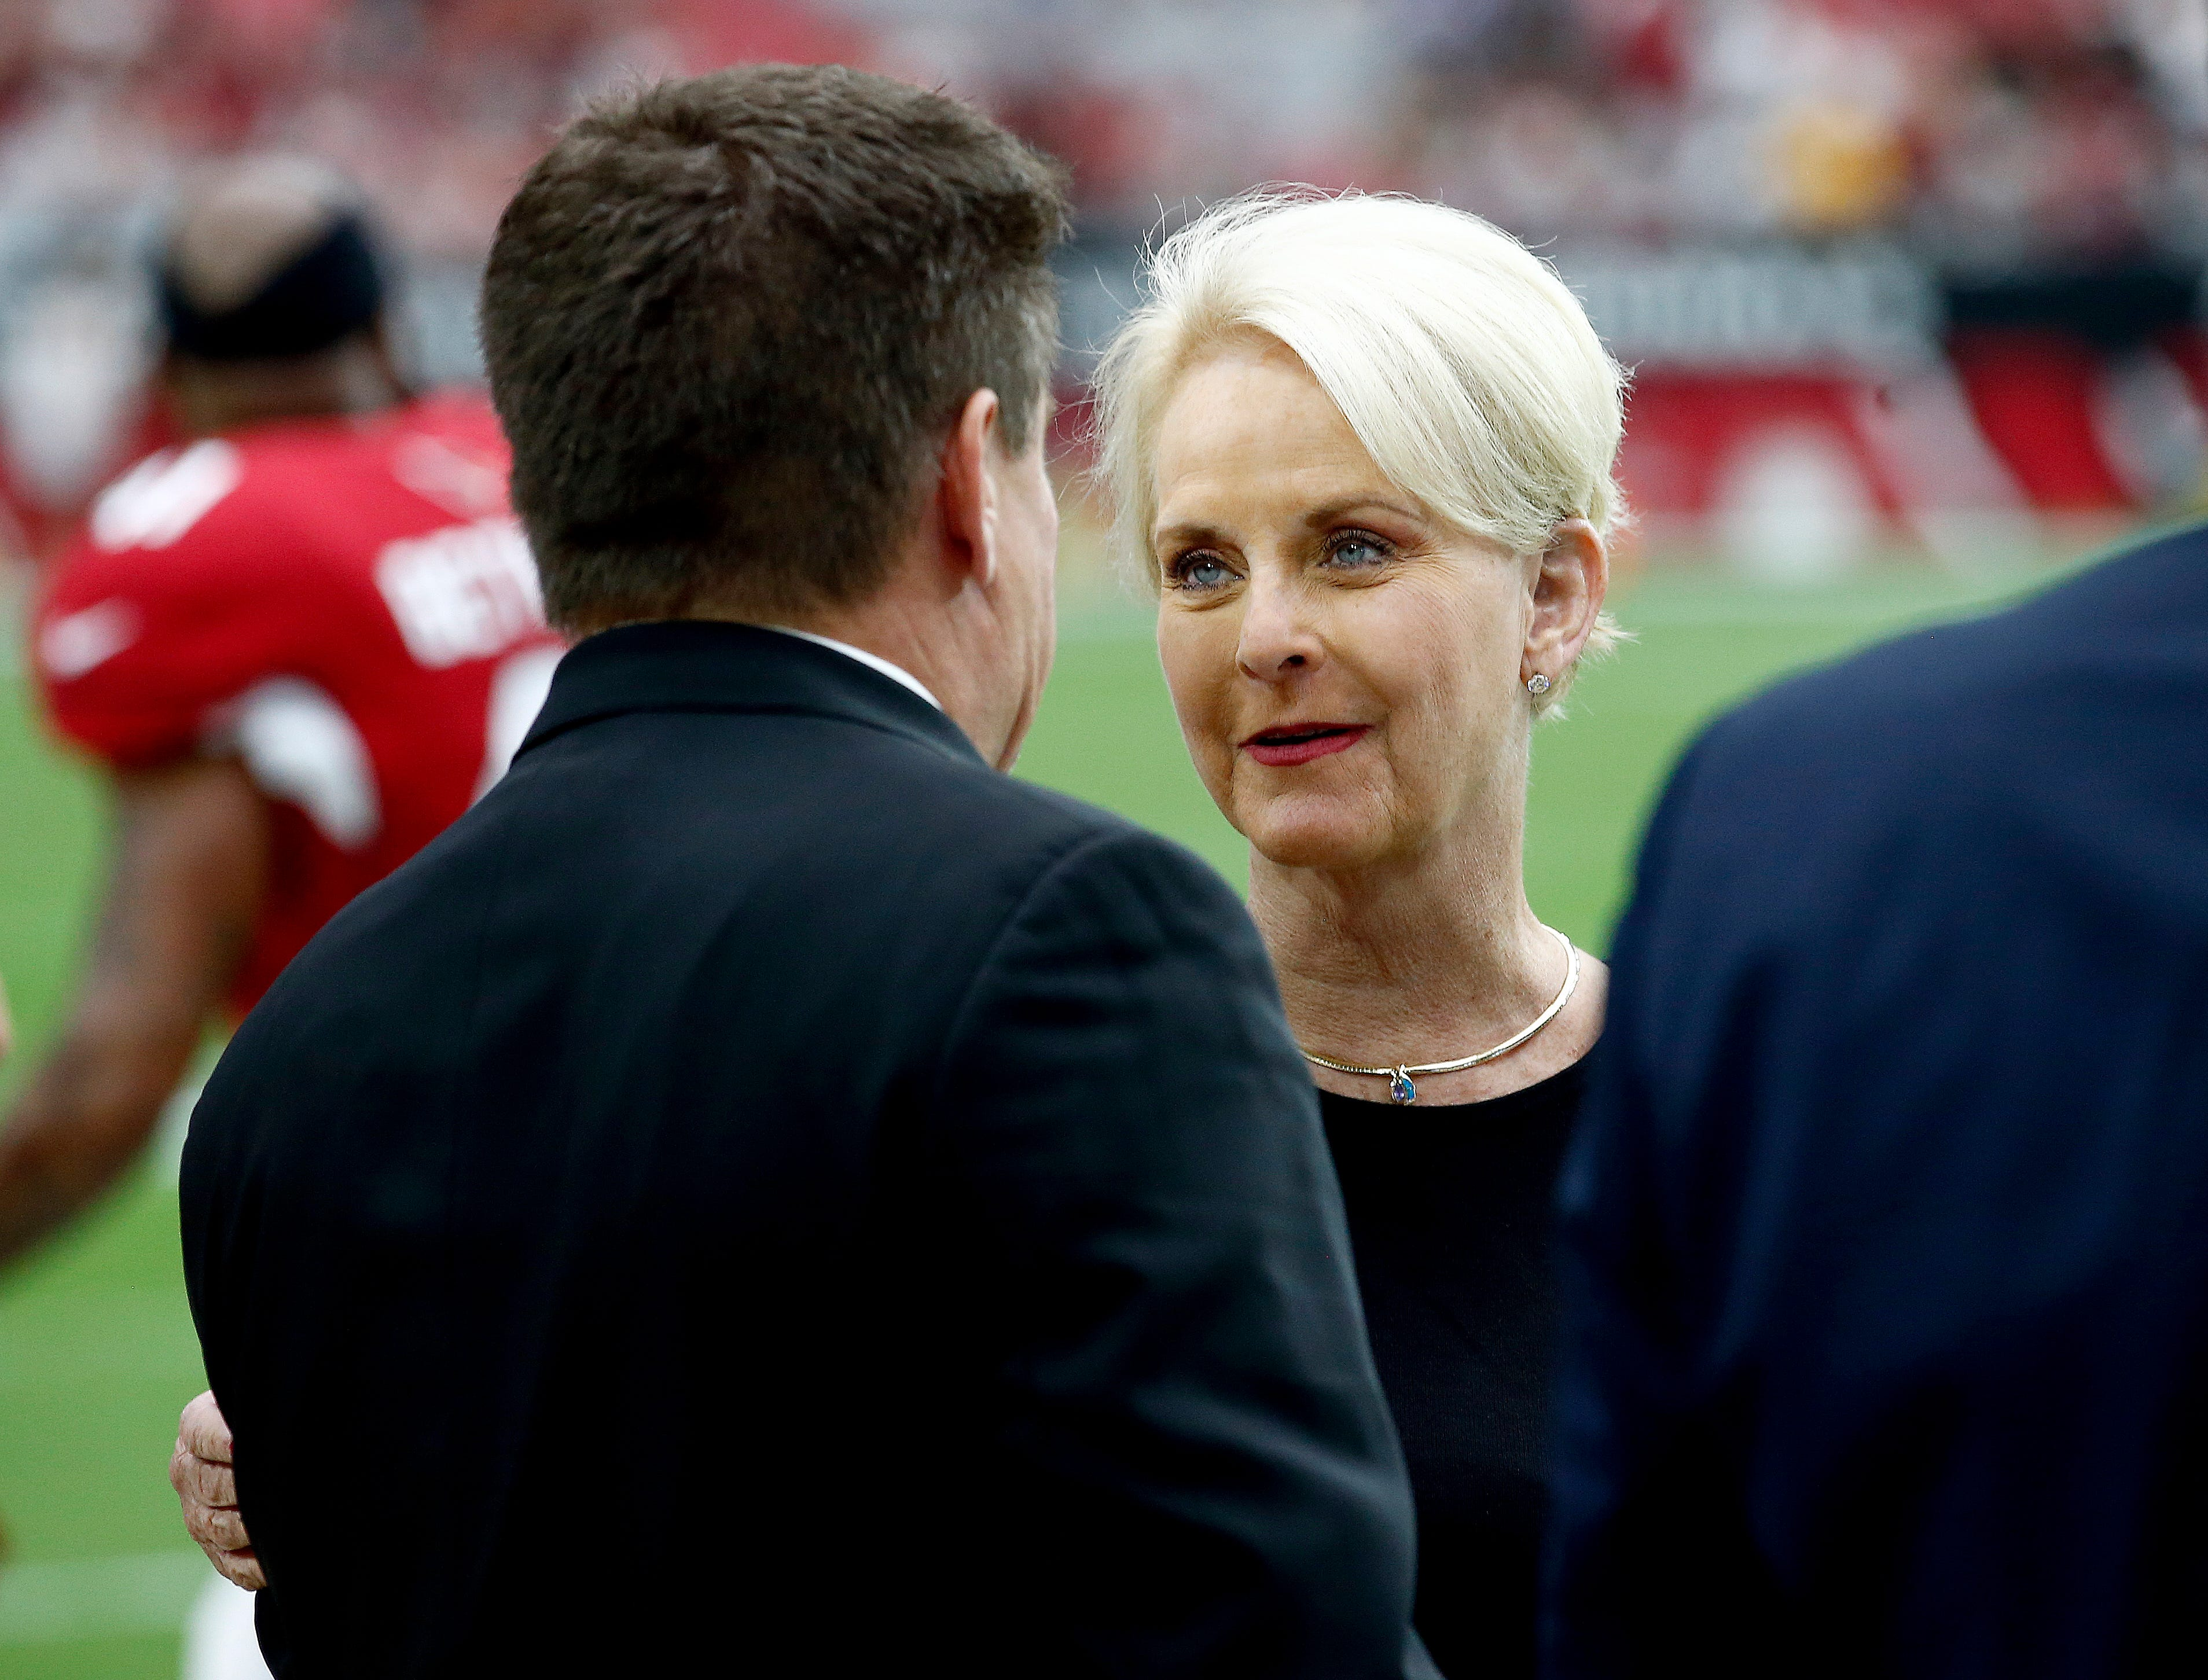 Cindy McCain, wife of the late U.S. Sen. John McCain, talks with Arizona Cardinals president Michael Bidwill prior to an NFL football game between the Washington Redskins and the Arizona Cardinals, Sept. 9, 2018, in Glendale, Ariz.